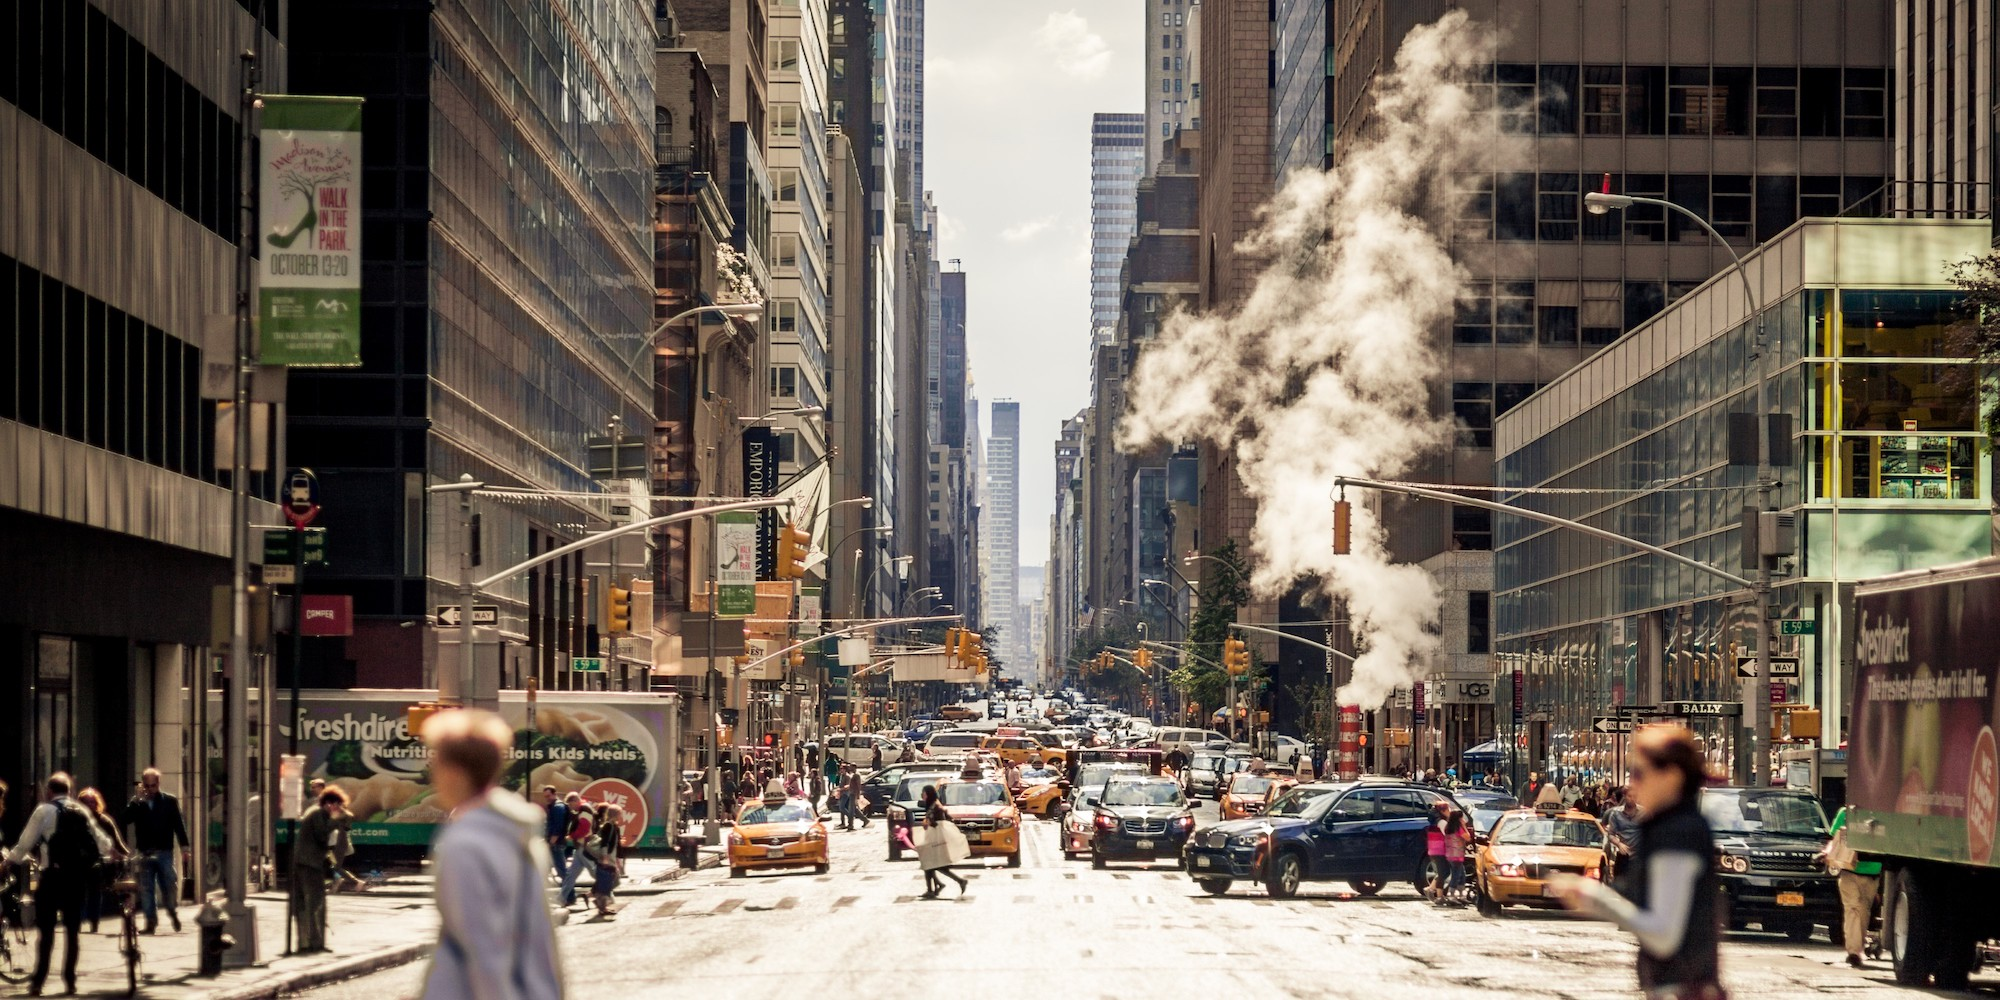 Looking down the street in New York City